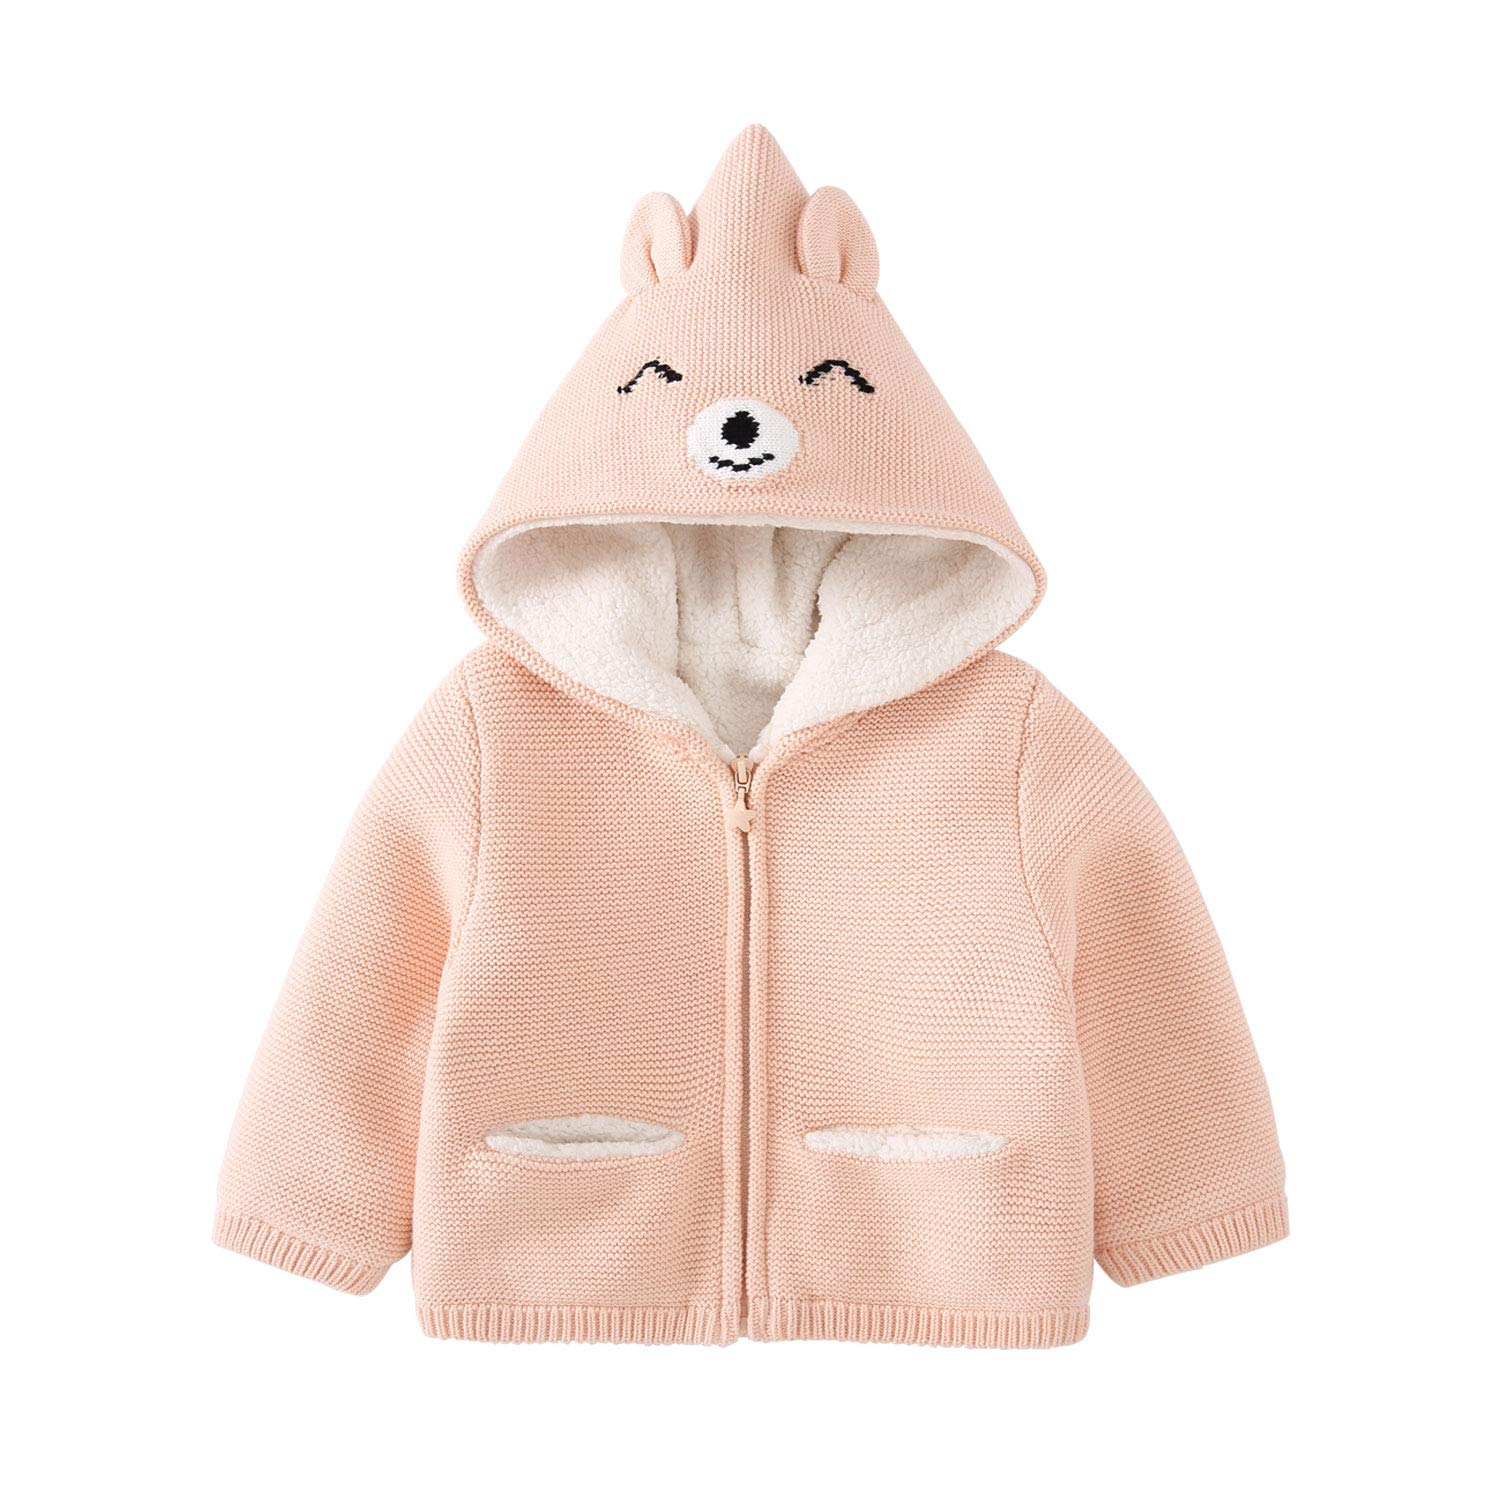 pureborn Baby Girl Hooded Cartoon Bear Zip-Up Sweater Jacket with Plush Lining Pink 1-2 Years by pureborn